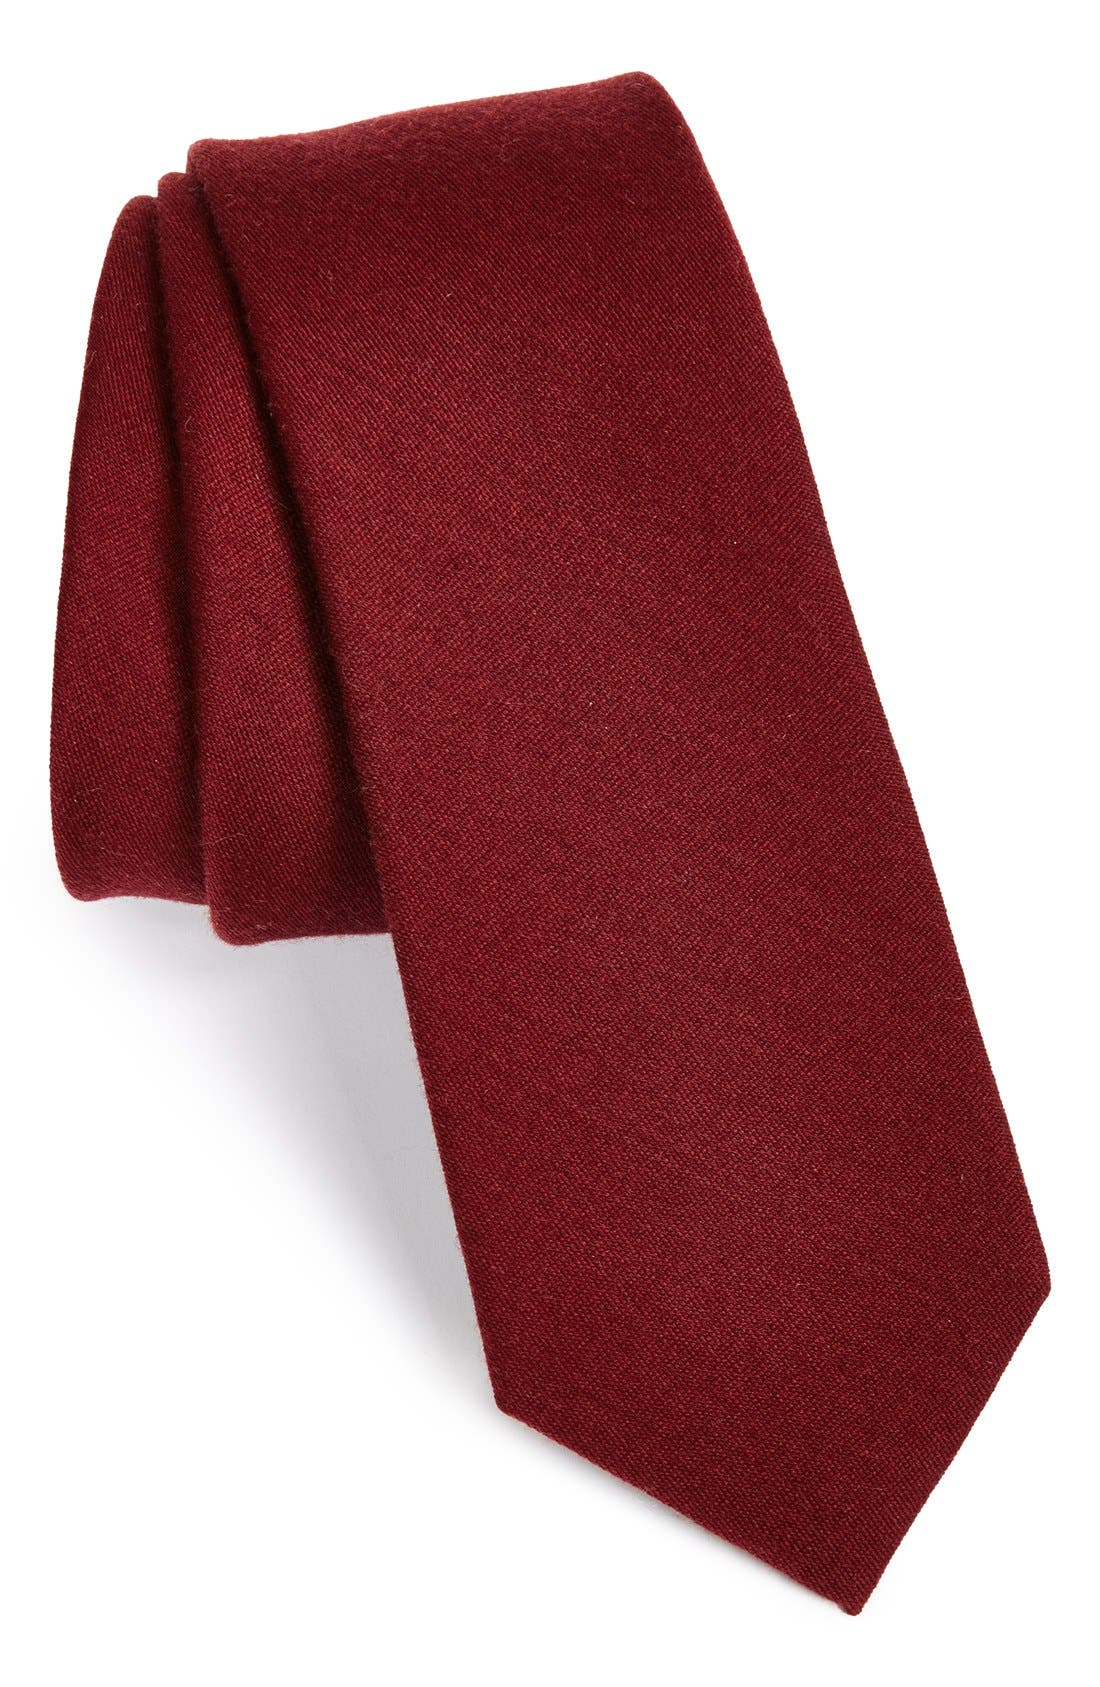 Alternate Image 1 Selected - The Tie Bar Wool & Silk Solid Tie (Online Only)